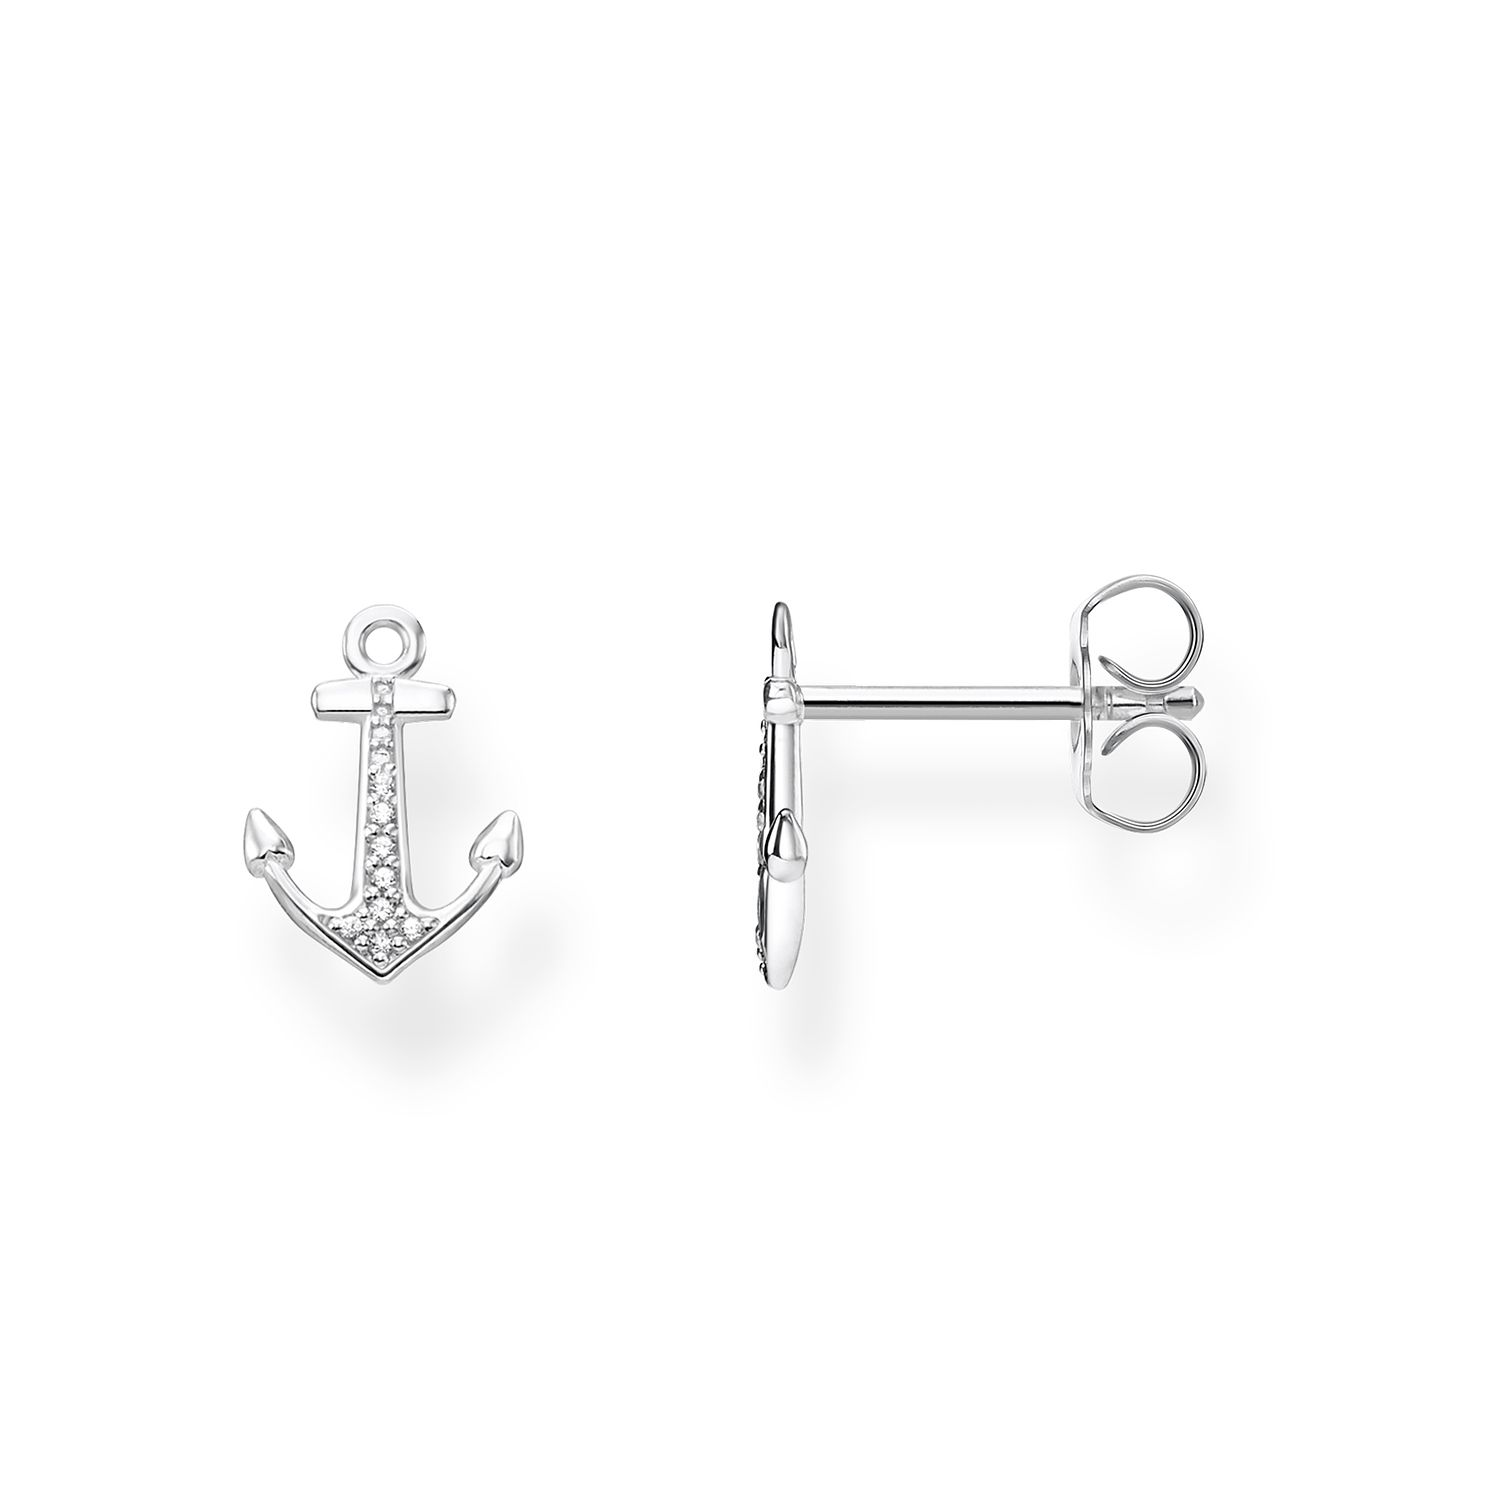 Thomas Sabo Sterling Silver Magic Star Stud Earrings - Product number 4007735